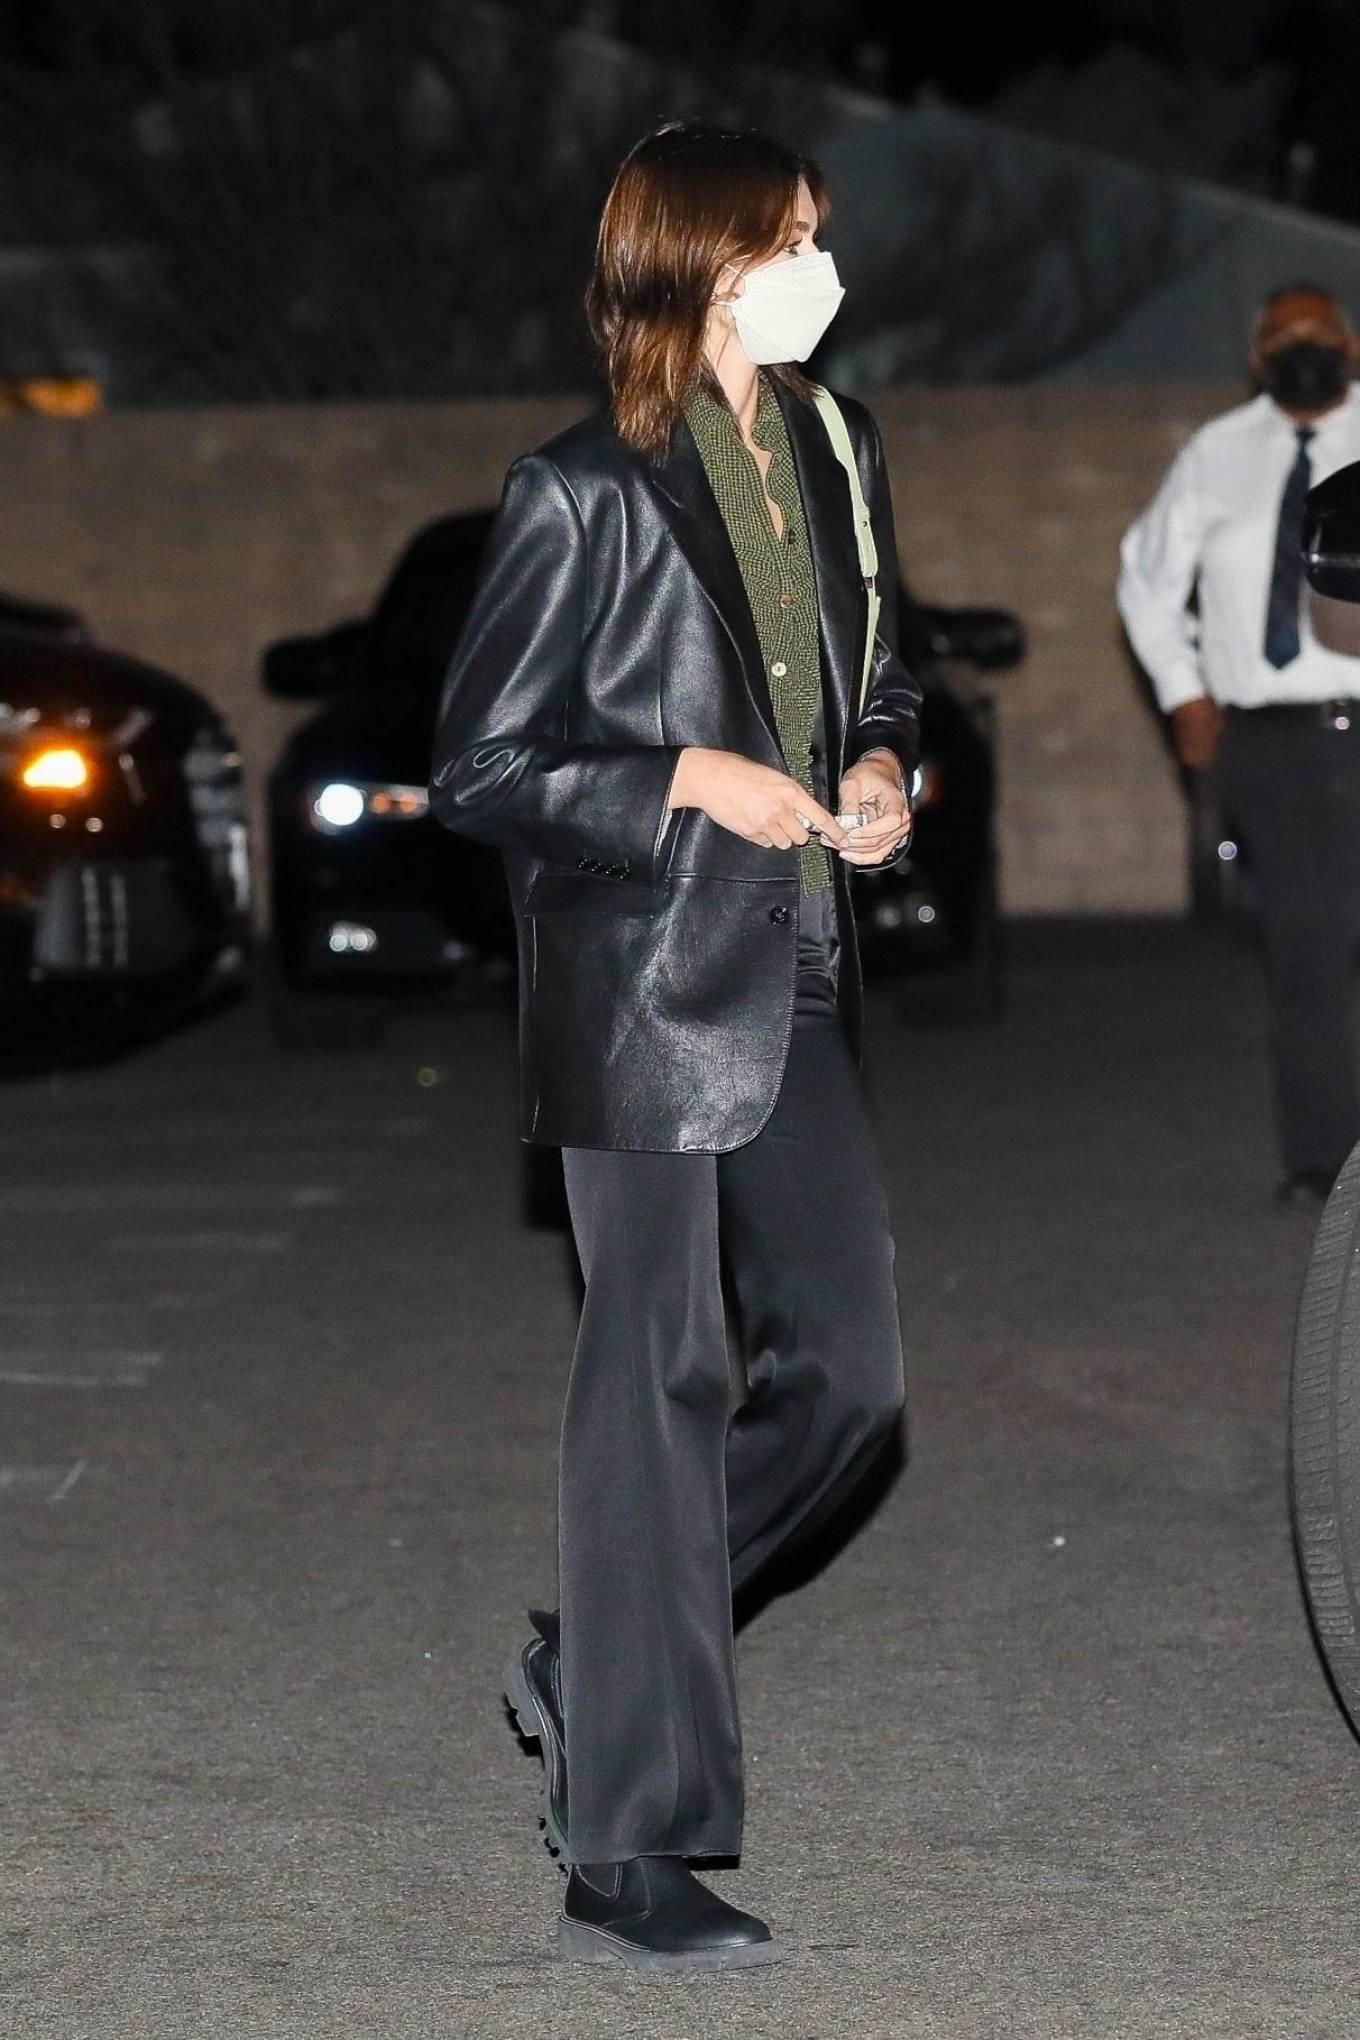 Kaia Gerber rocking a plunging olive green top with button front